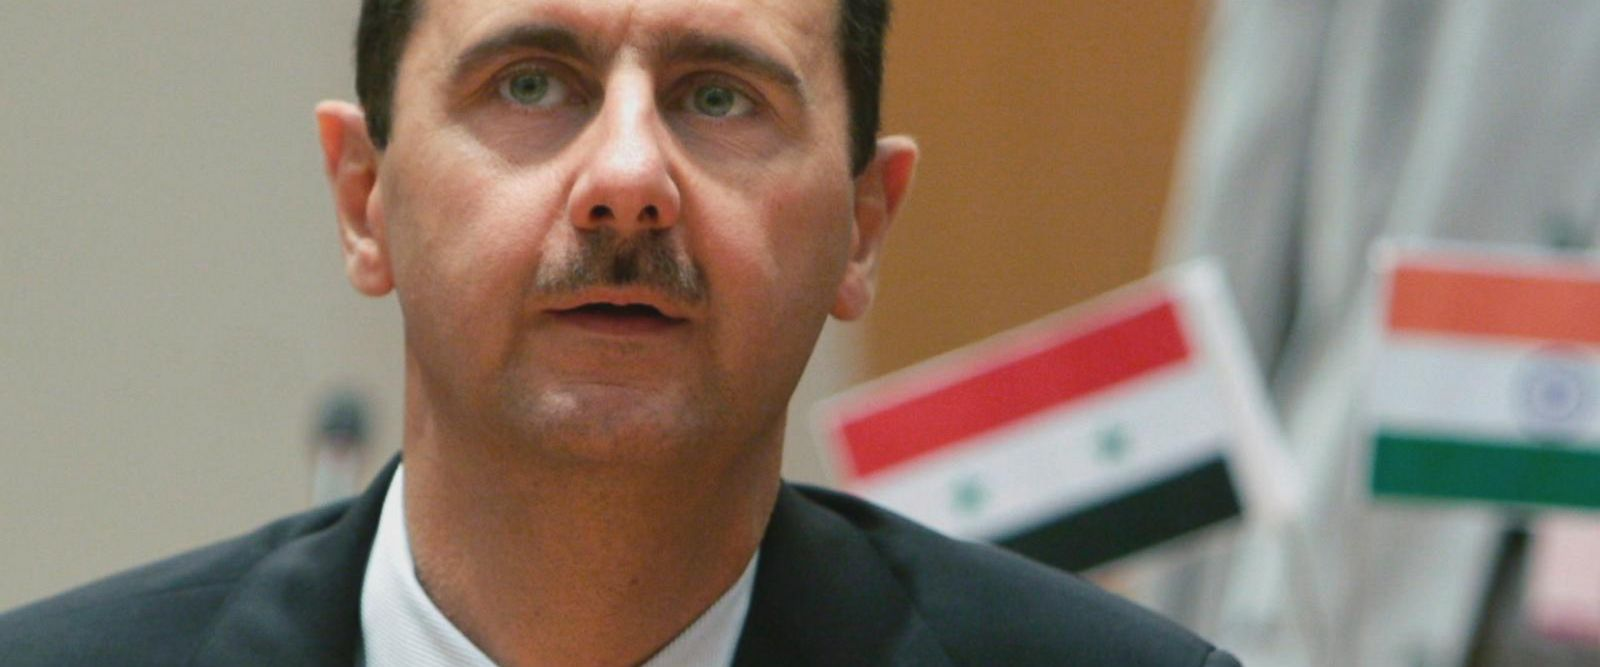 VIDEO: Syria may be planning another chemical attack: White House